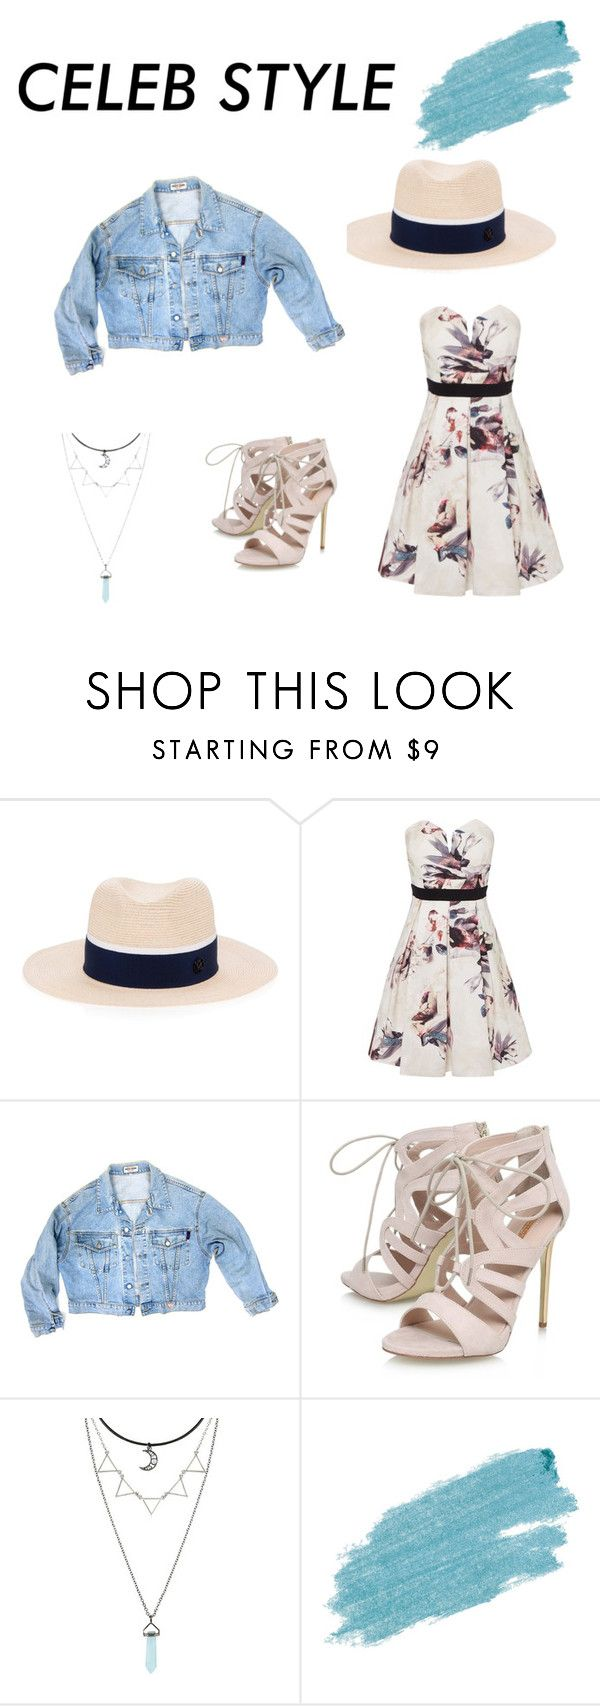 """""""Cleleb style"""" by lolsmilez ❤ liked on Polyvore featuring Maison Michel, Little Mistress, GUESS, Carvela, Jane Iredale, GetTheLook and hats"""